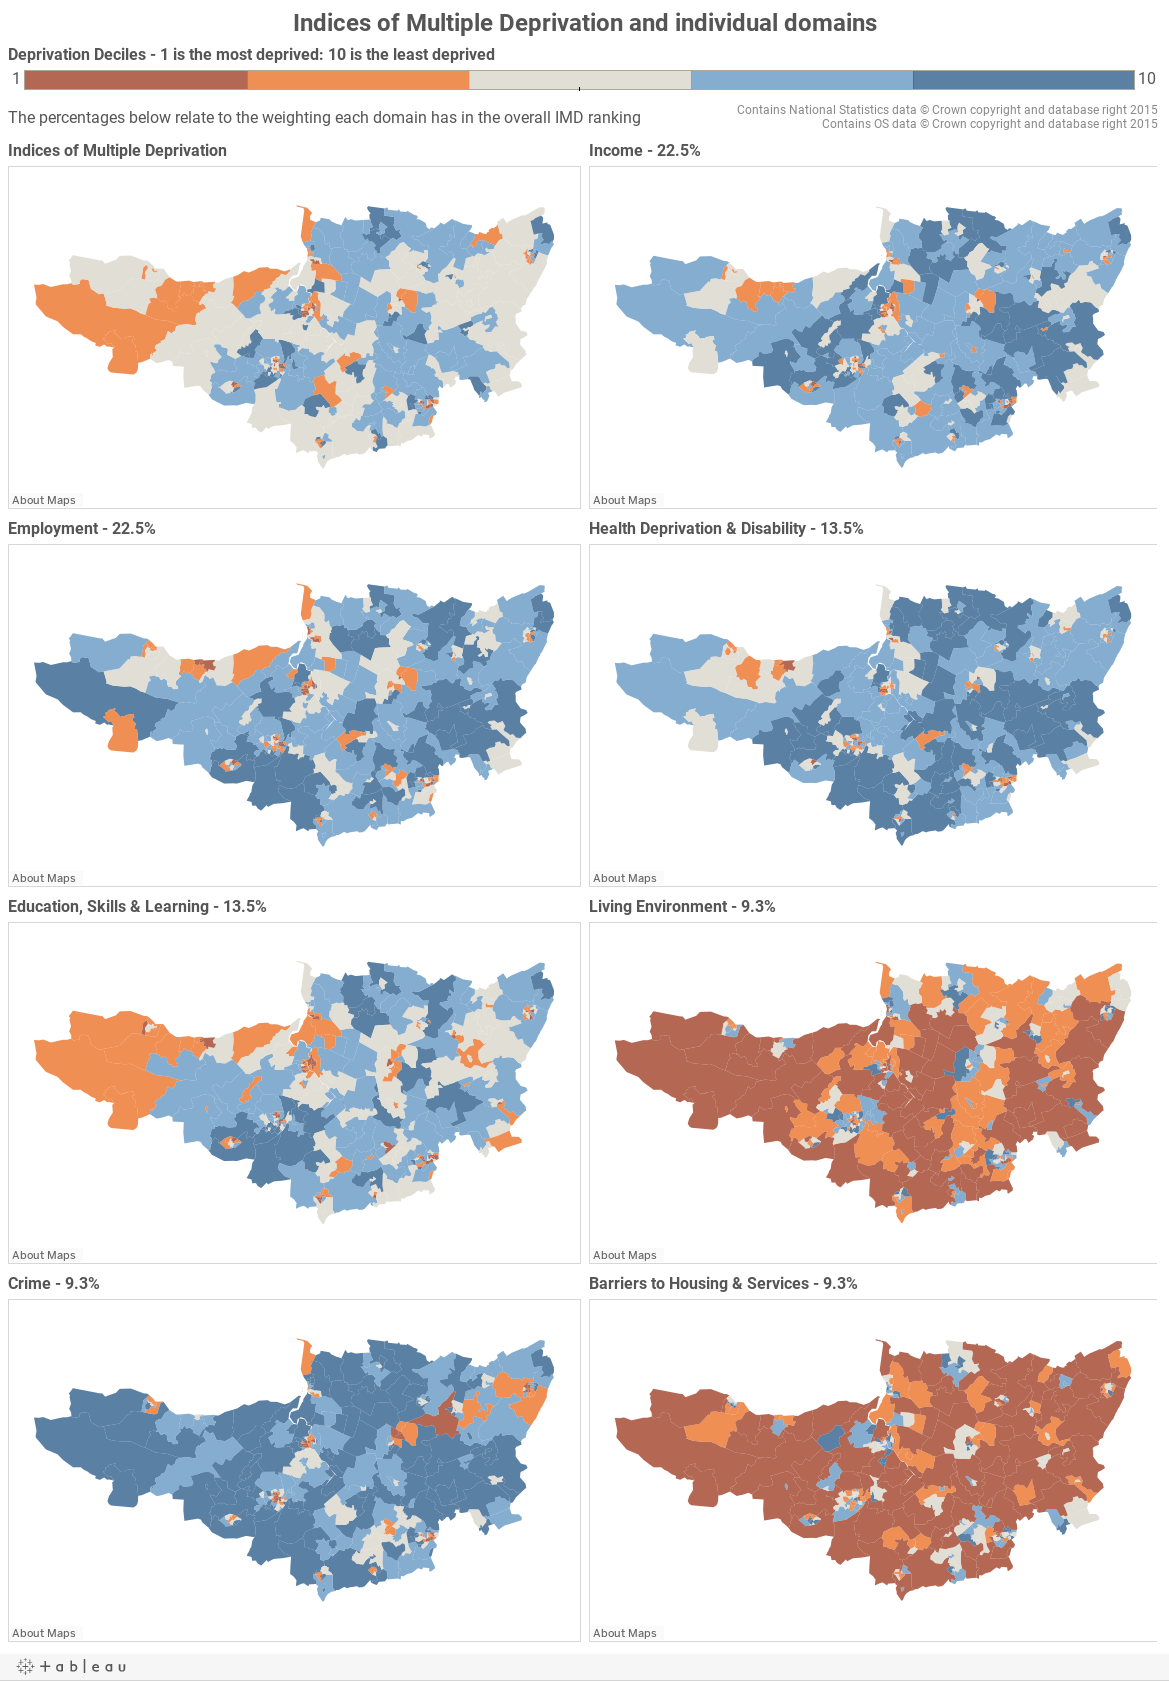 Indices of Multiple Deprivation and individual domains